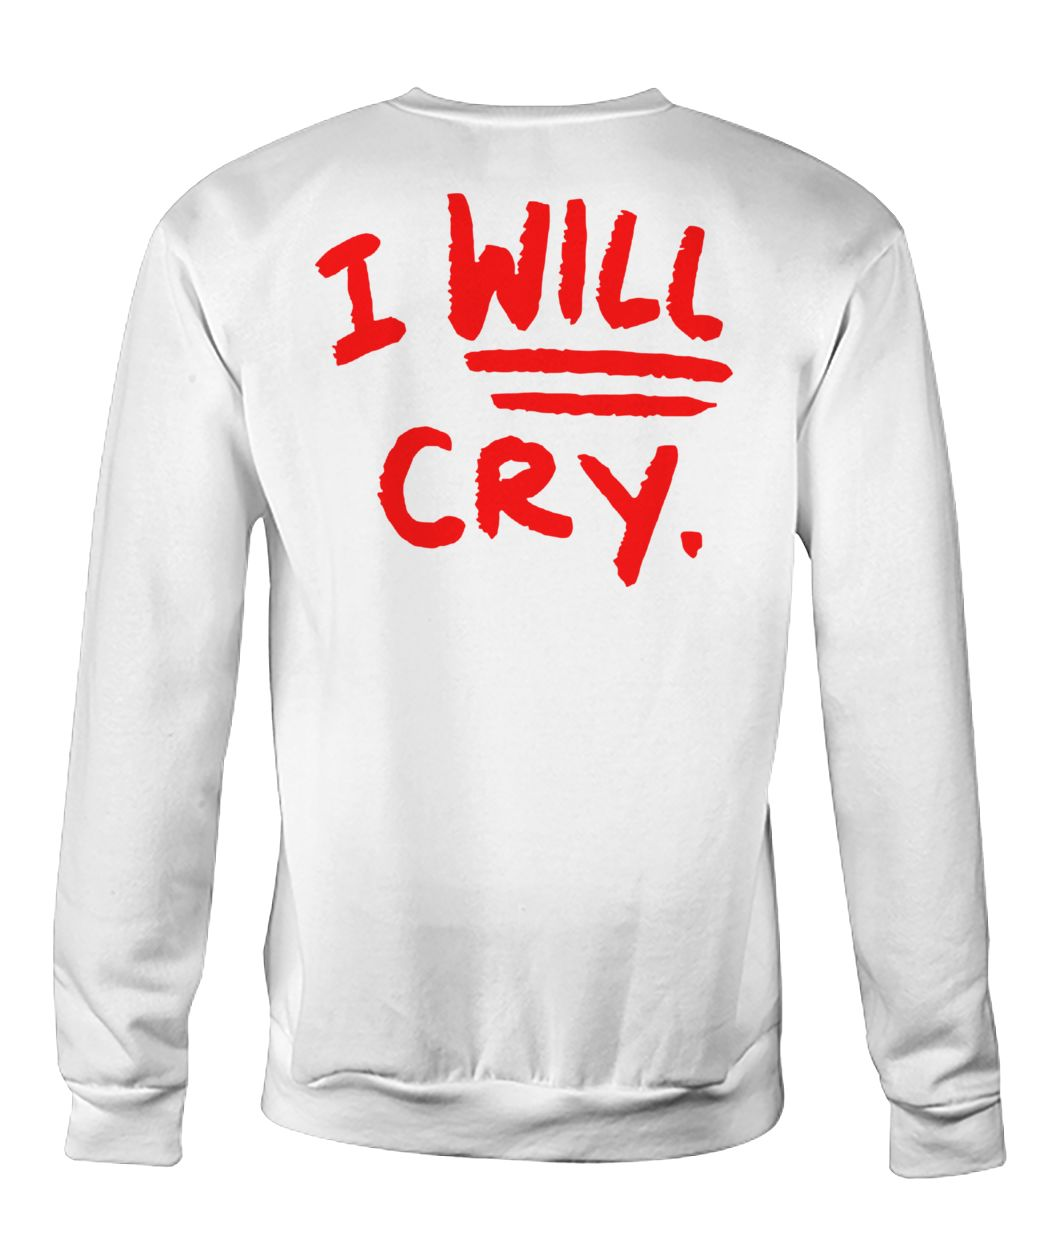 Don't fuck with me I will cry crew neck sweatshirt